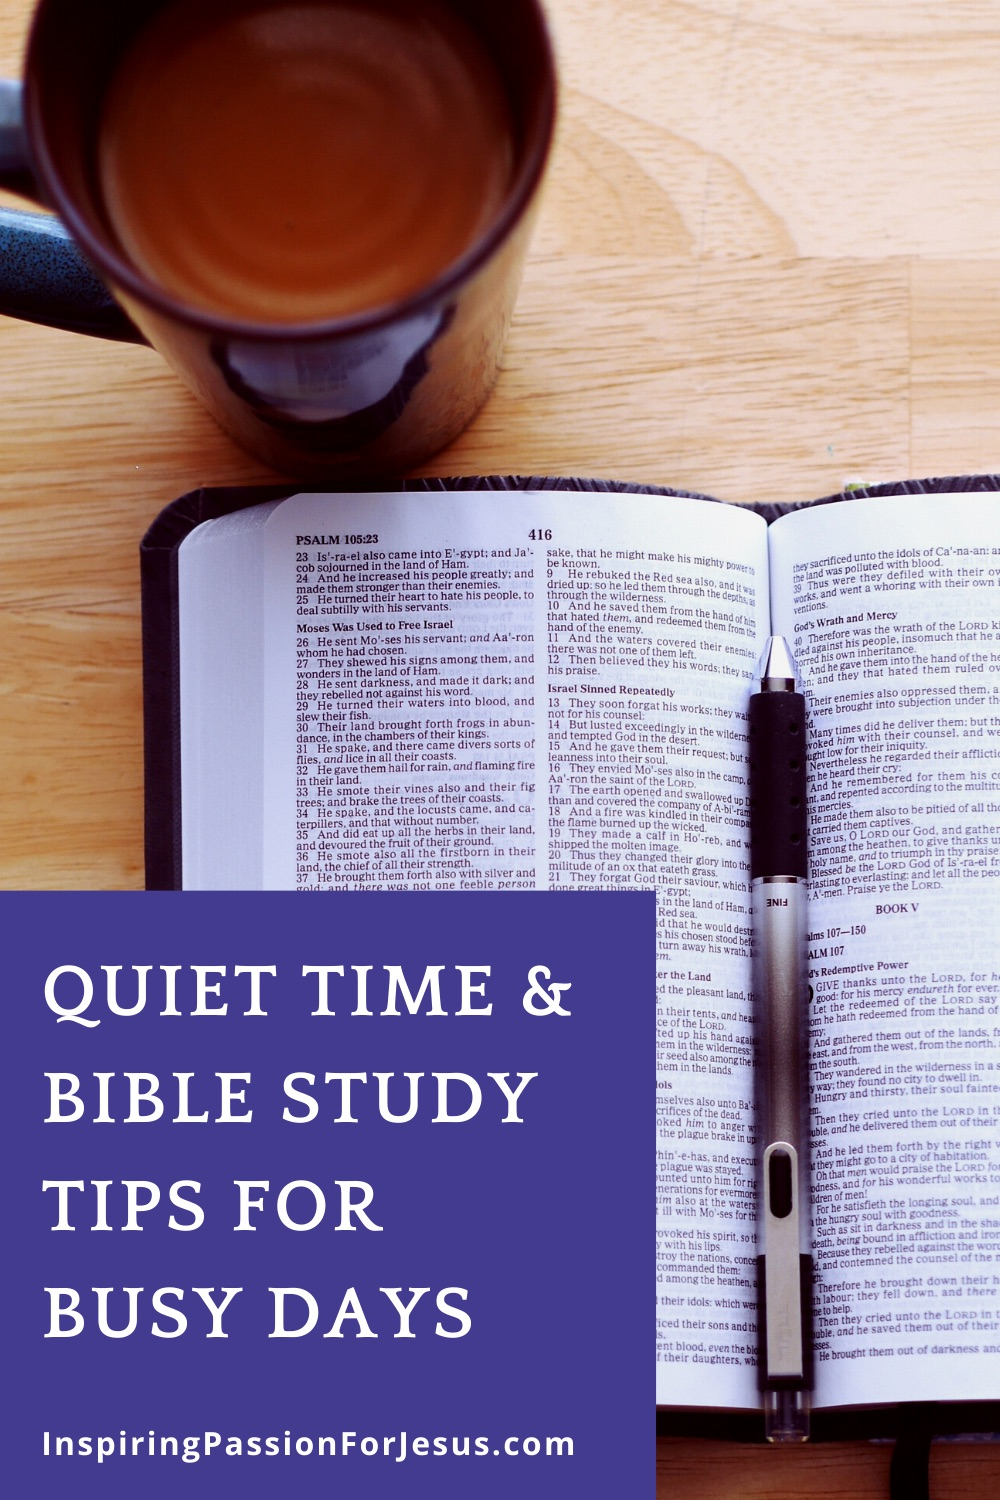 Bible Study and Quiet Time Tips for Busy Days